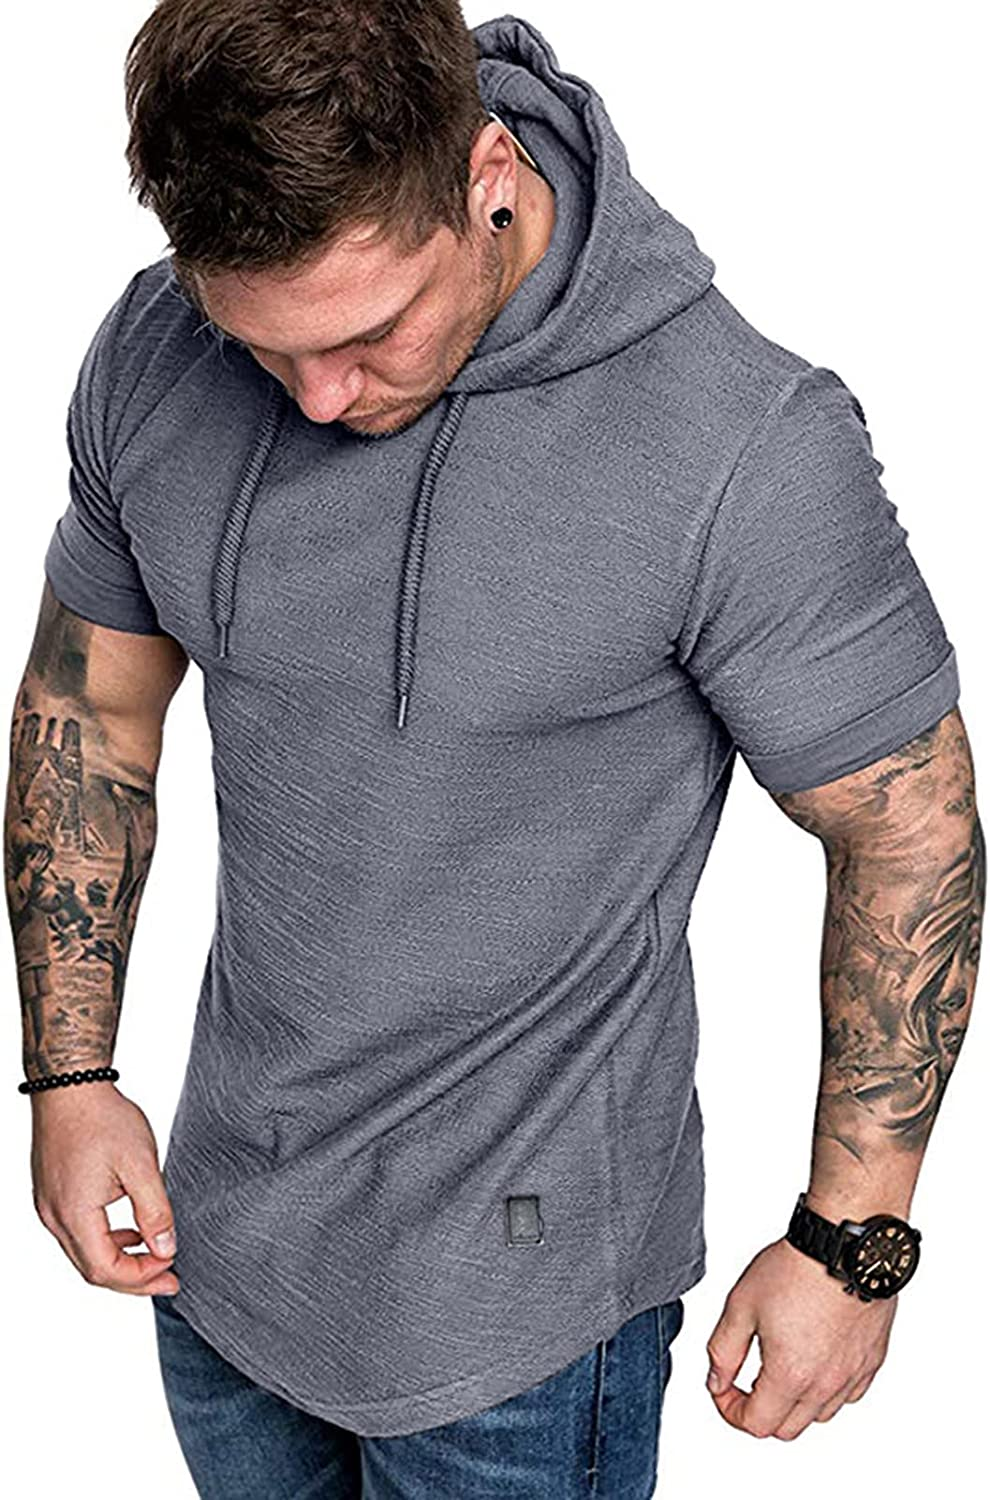 Mens Fashion Workout Hooded T-Shirts Casual Sport Atheletic Hoodies Cotton Short Sleeve Tops